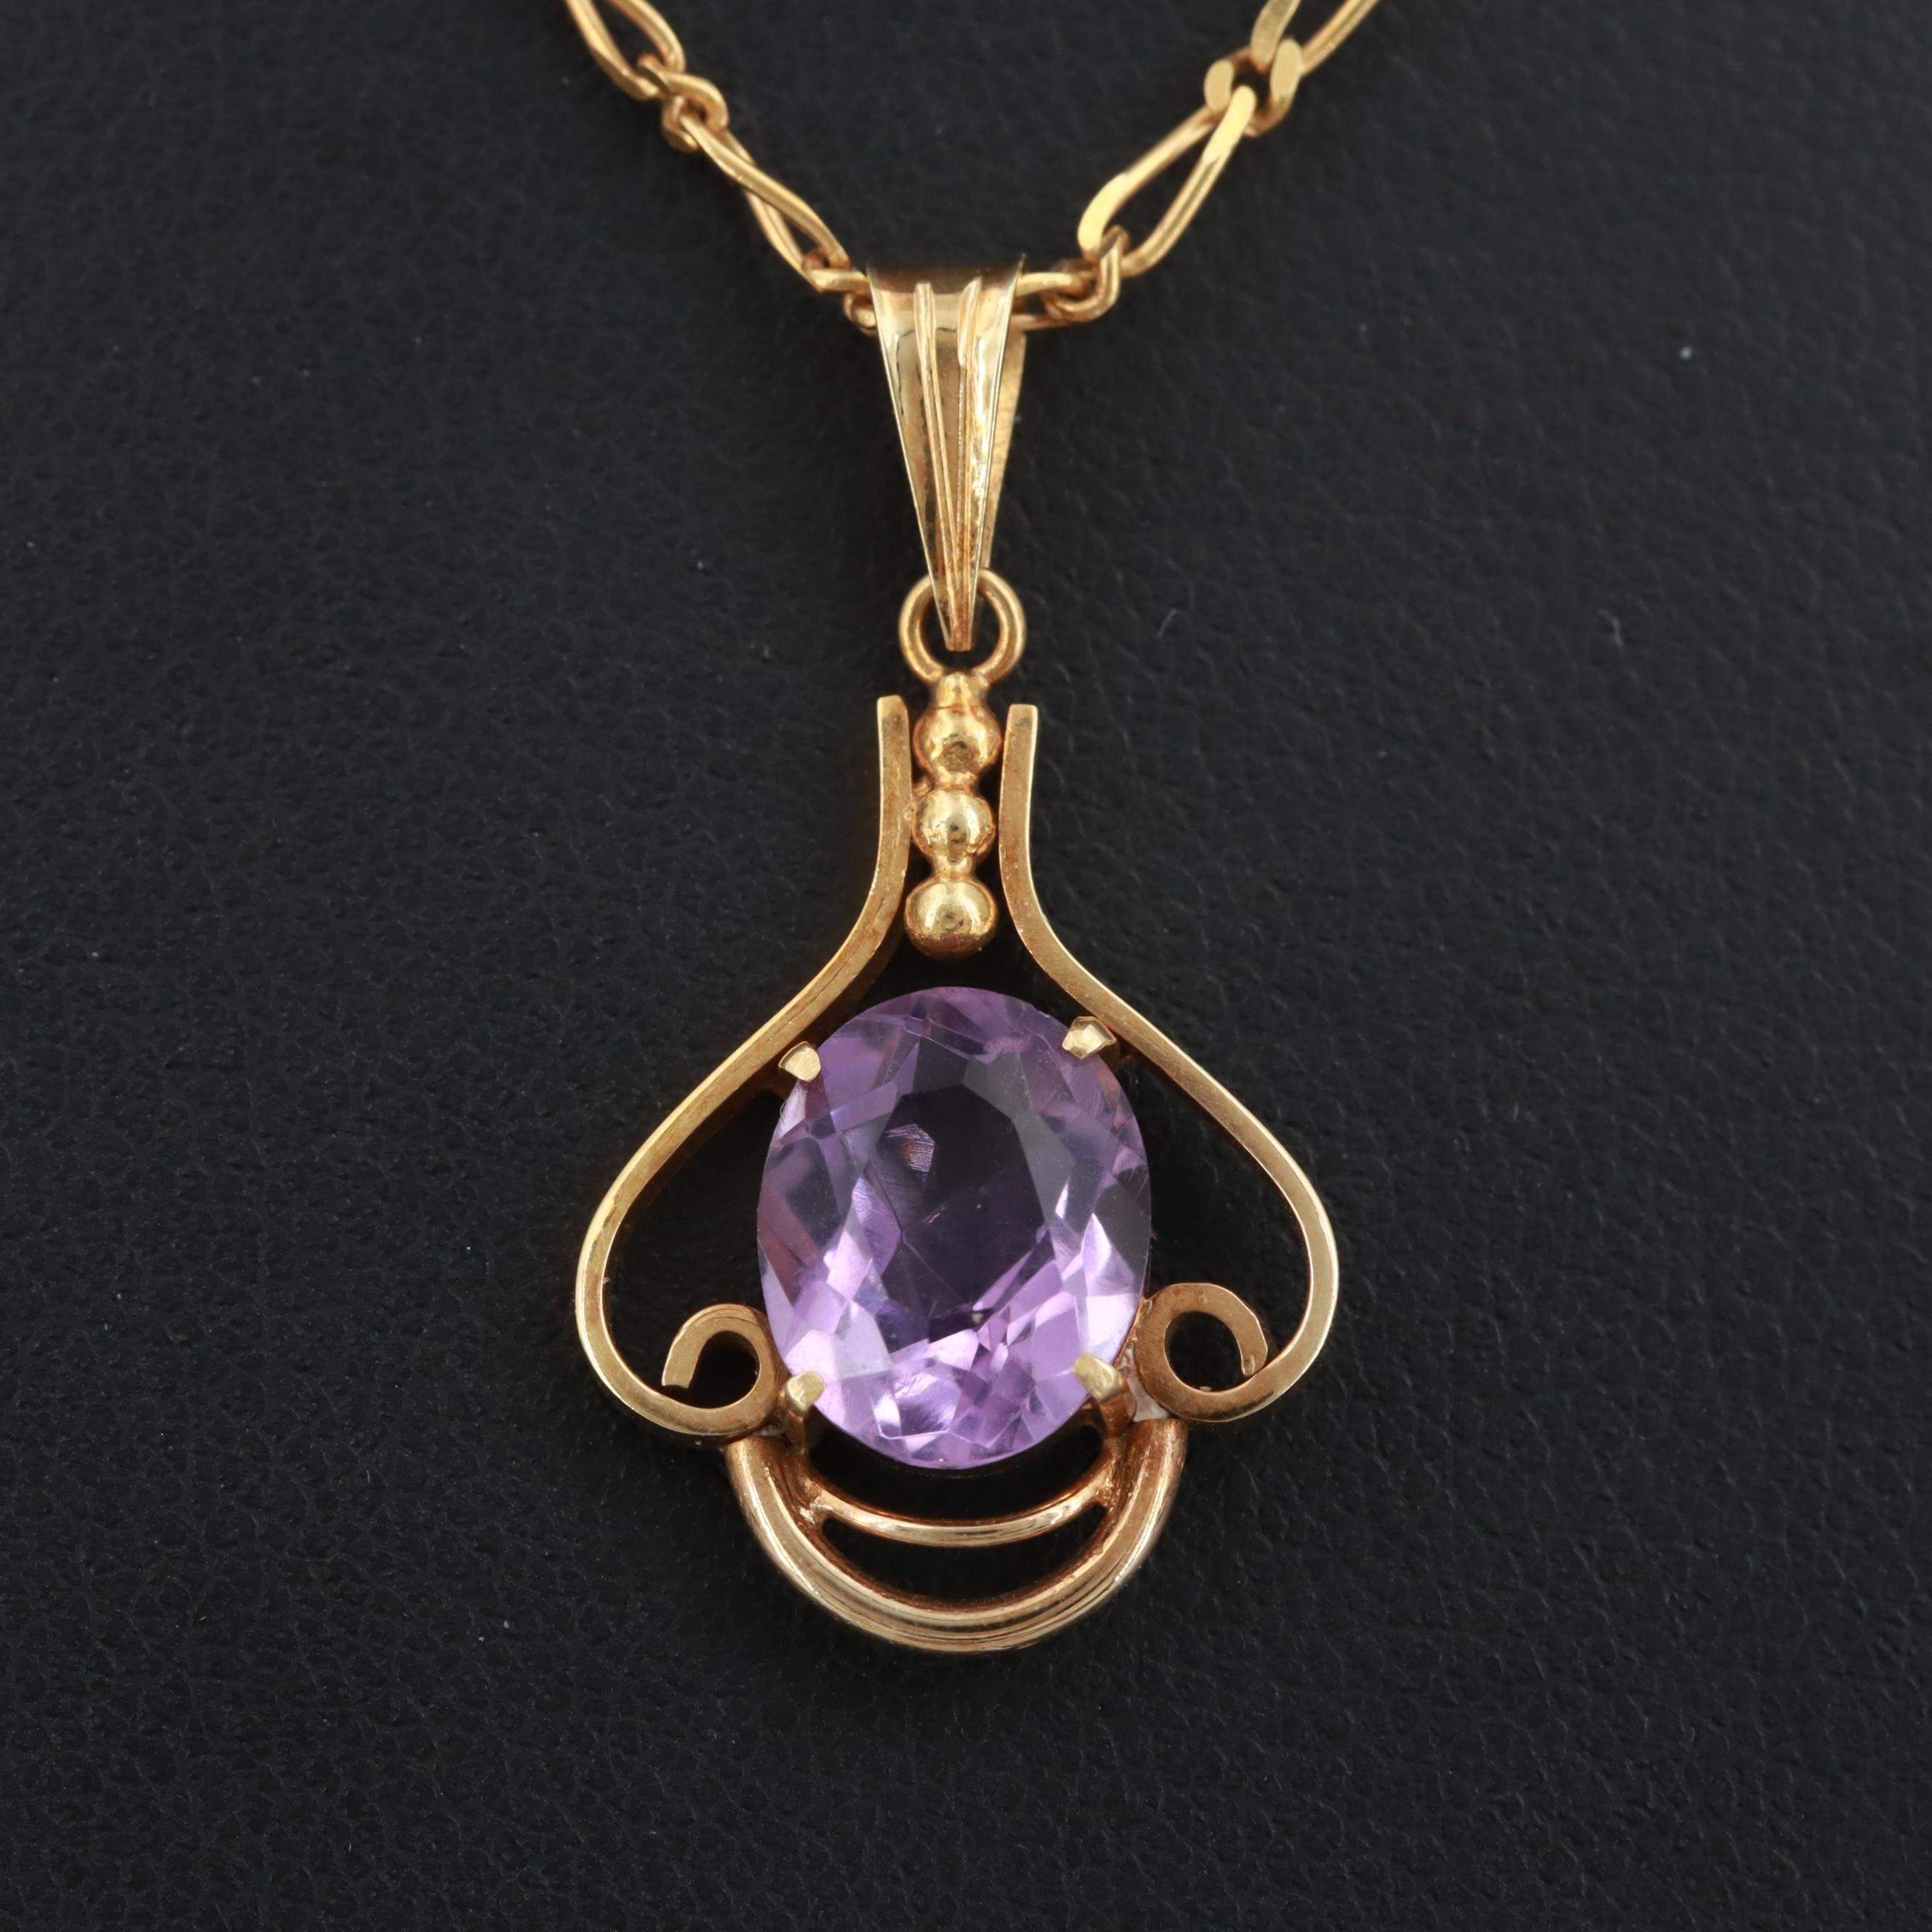 14K Yellow Gold Amethyst Pendant on 18K Yellow Gold Chain Necklace